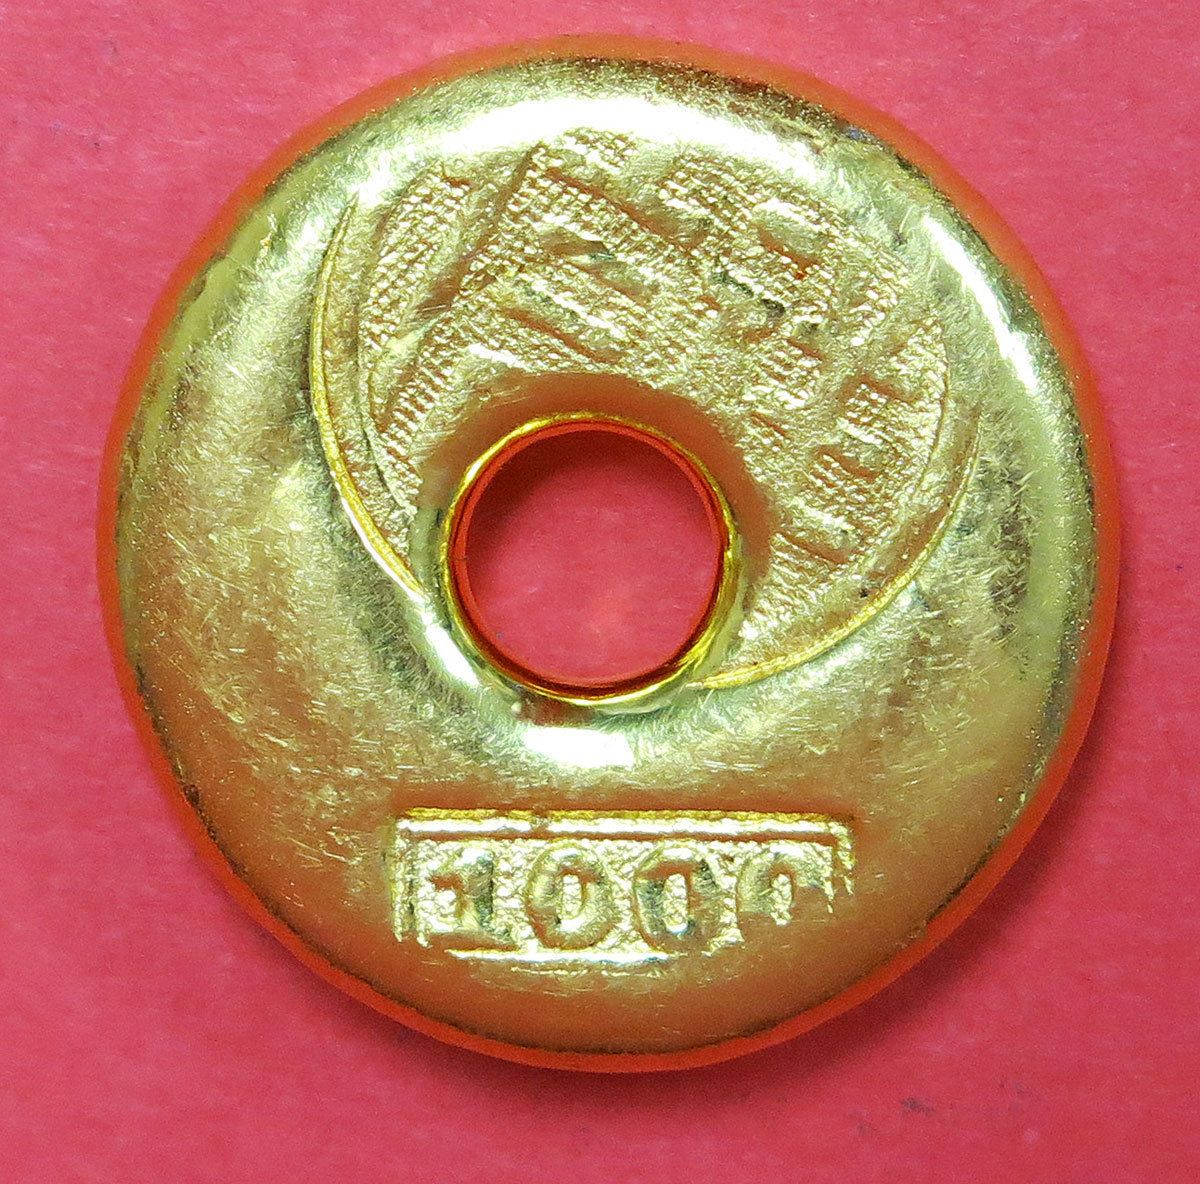 #New post #Chinese Tael Doughnut 1.2 Oz 37.5gr Gold Coin .999 Fine China Weight Measure  http://i.ebayimg.com/images/g/oQoAAOSwuLZYyakE/s-l1600.jpg      Item specifics    									 			Coin:   												Tael  									 			Grade:   												Ungraded    									 			Precious Metal Content per Unit:   												1.2 oz  									 			Metal Type:   												Gold    									 			Fineness:   												.999  									 			Type:  ... https://www.shopnet.one/chinese-tael-dough